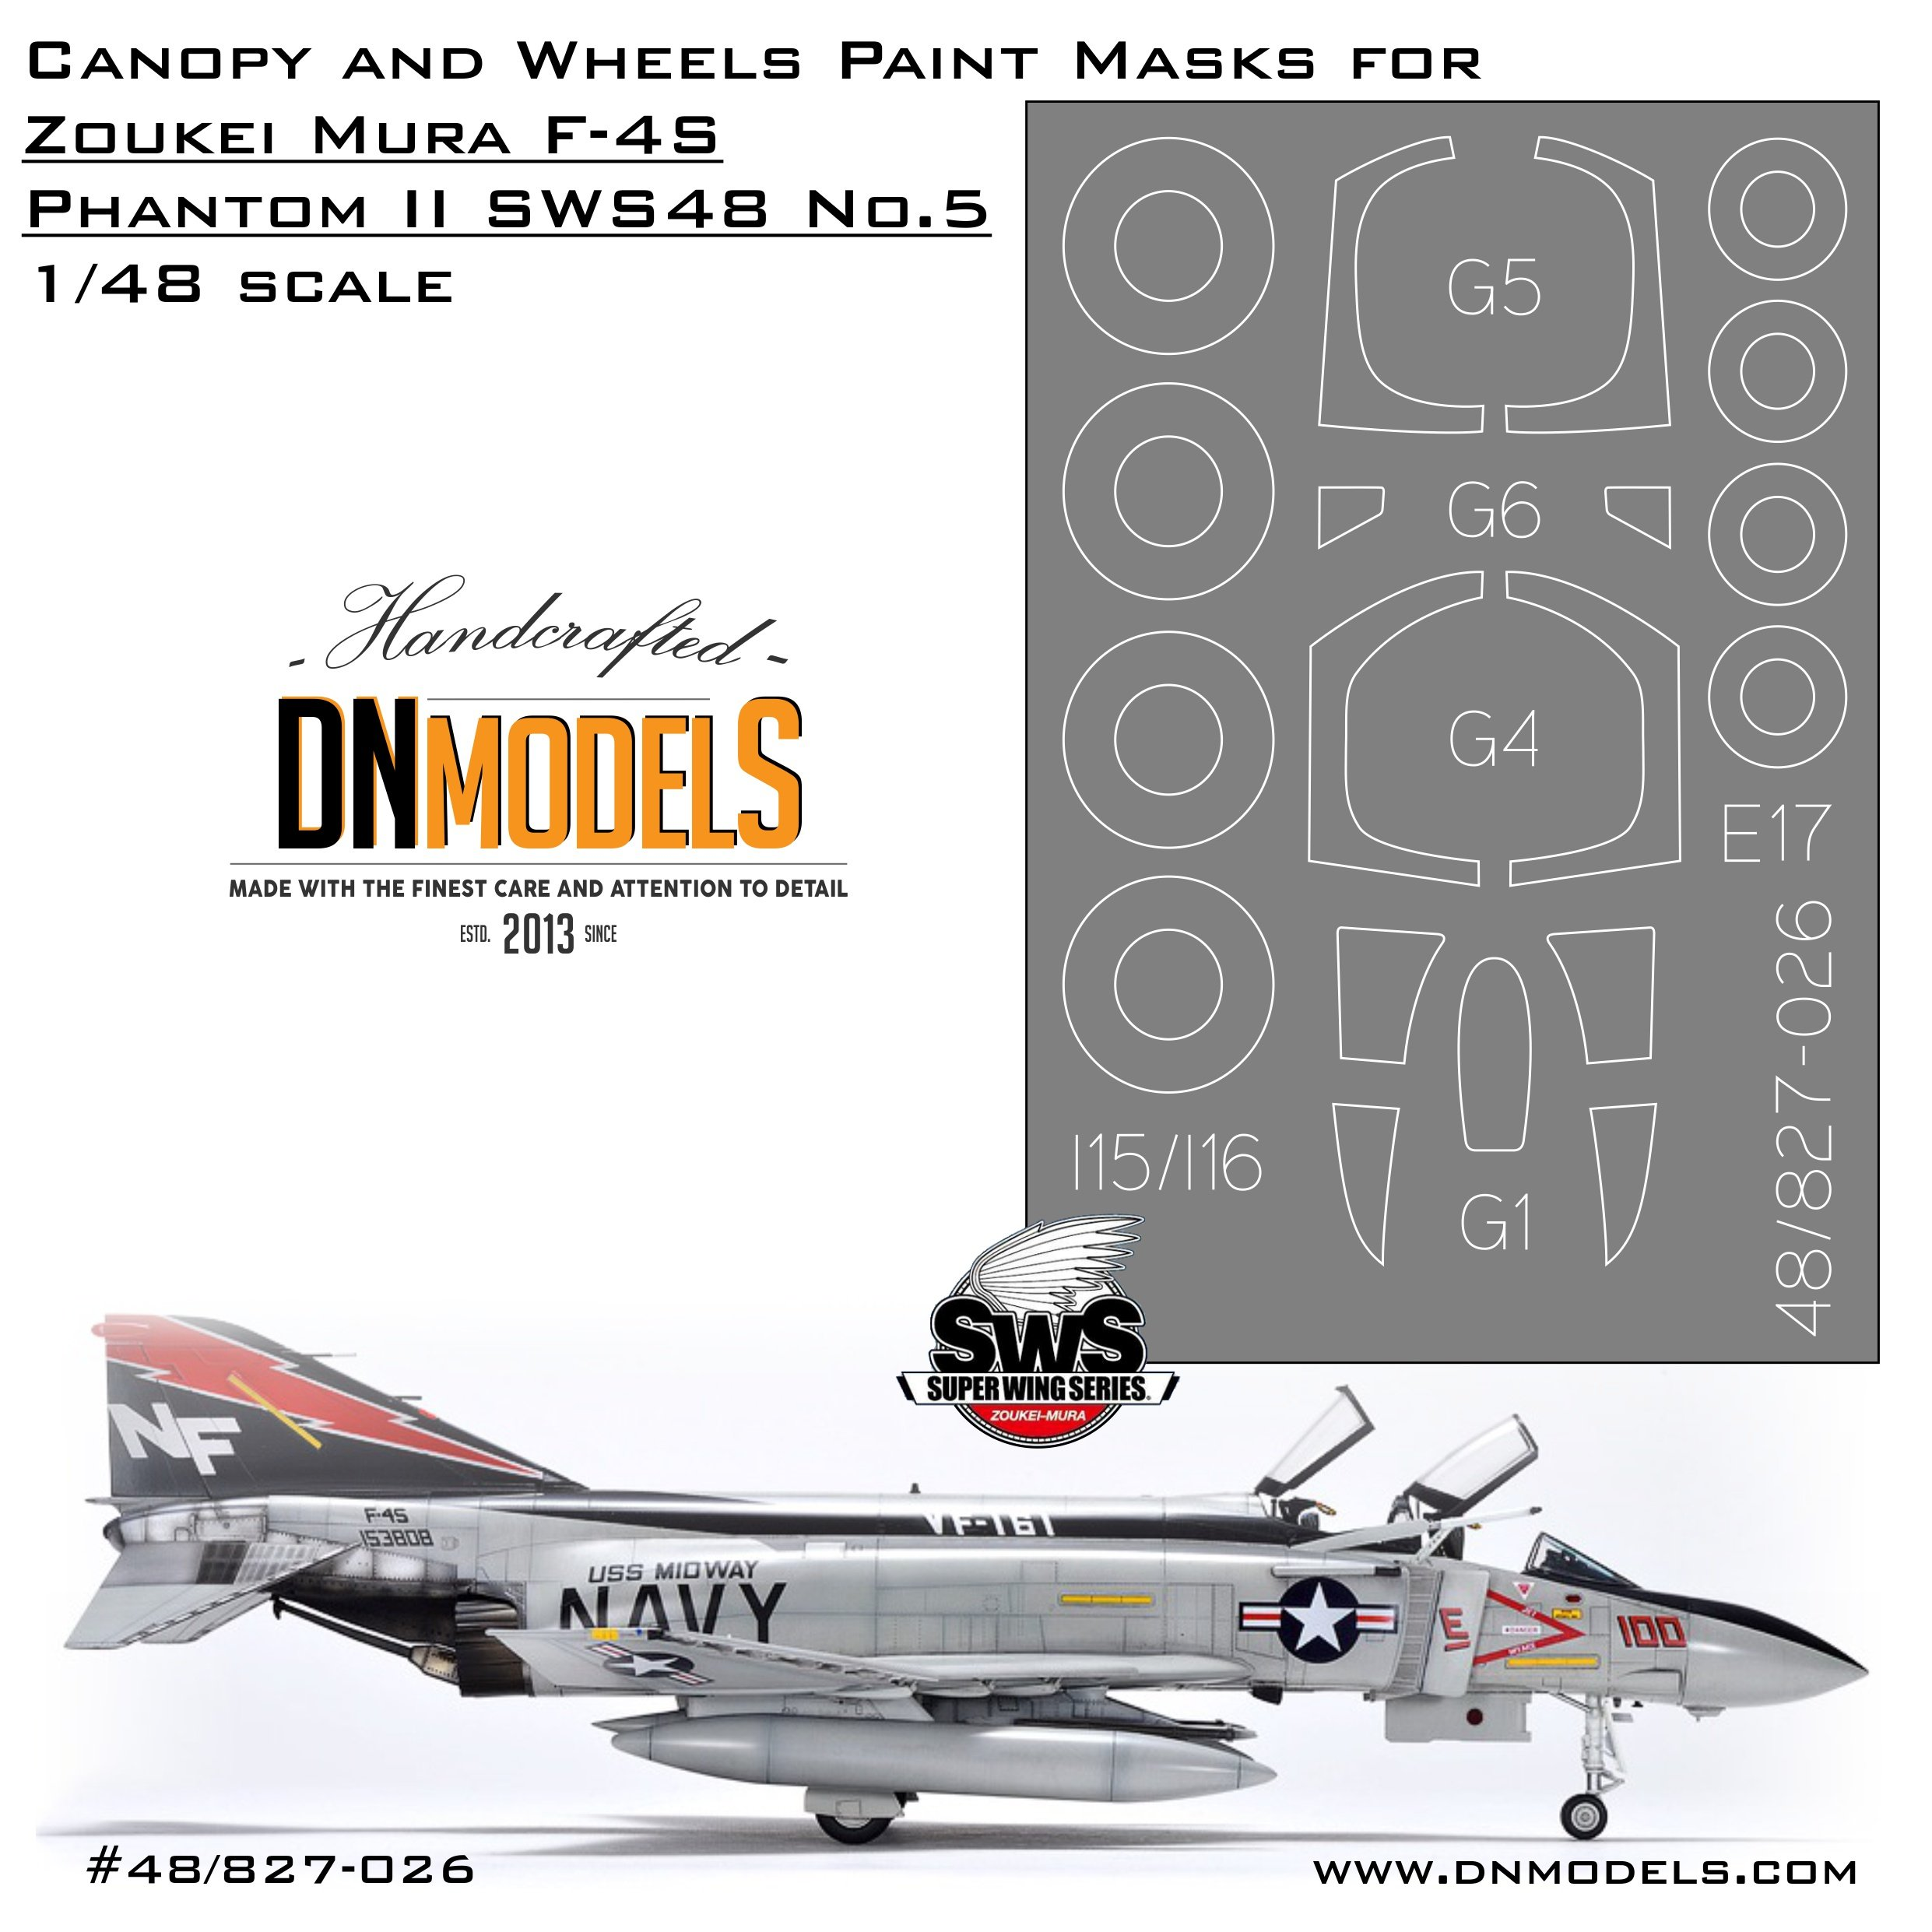 f-4s zoukei mura dn models canopy wheels mask set 1/48 phantom II sws no.5